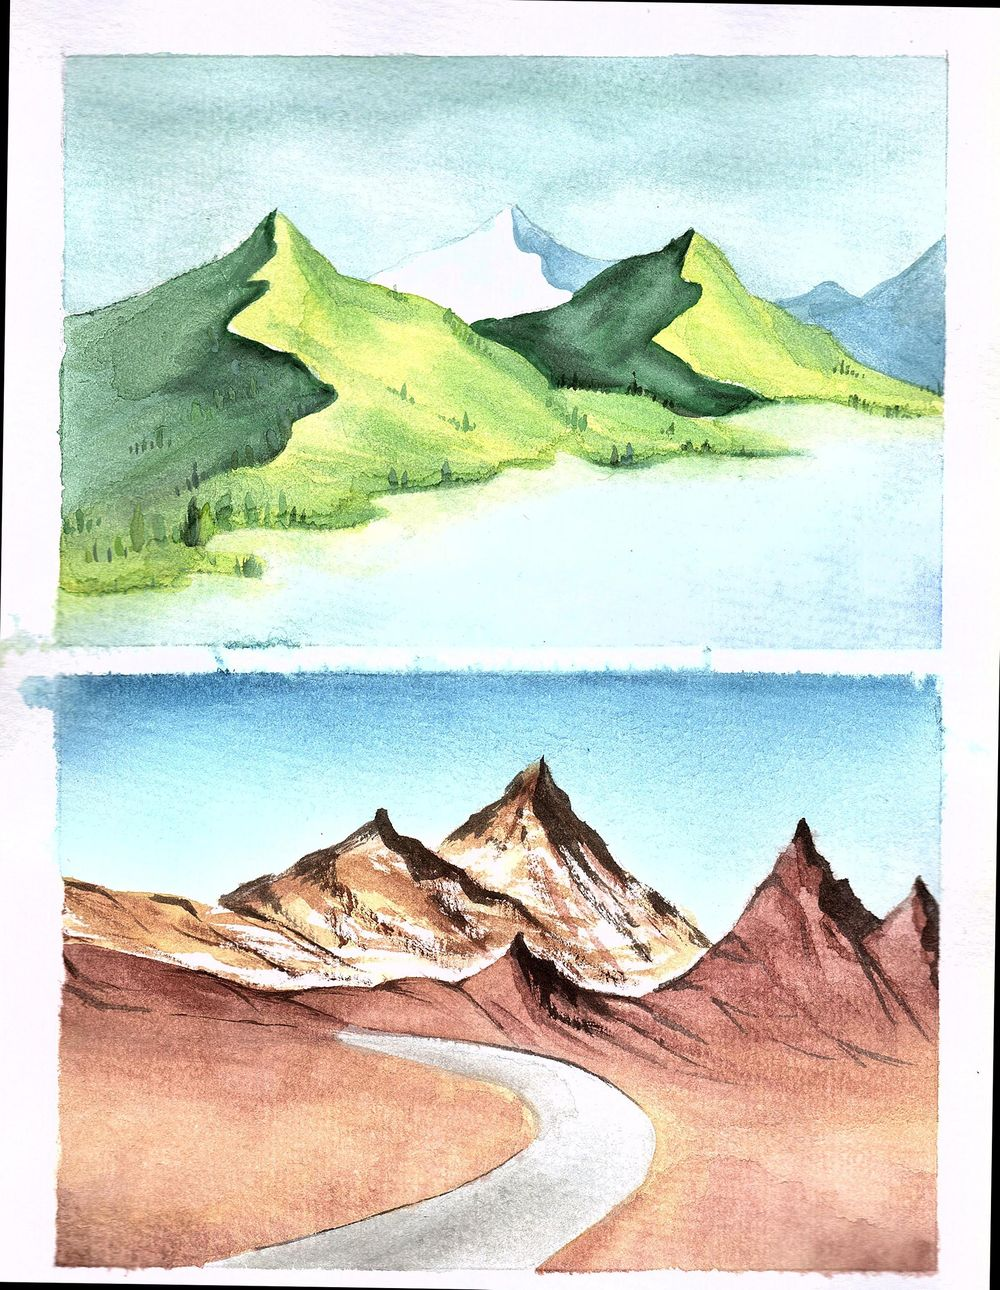 Watercolor Paintings - image 1 - student project